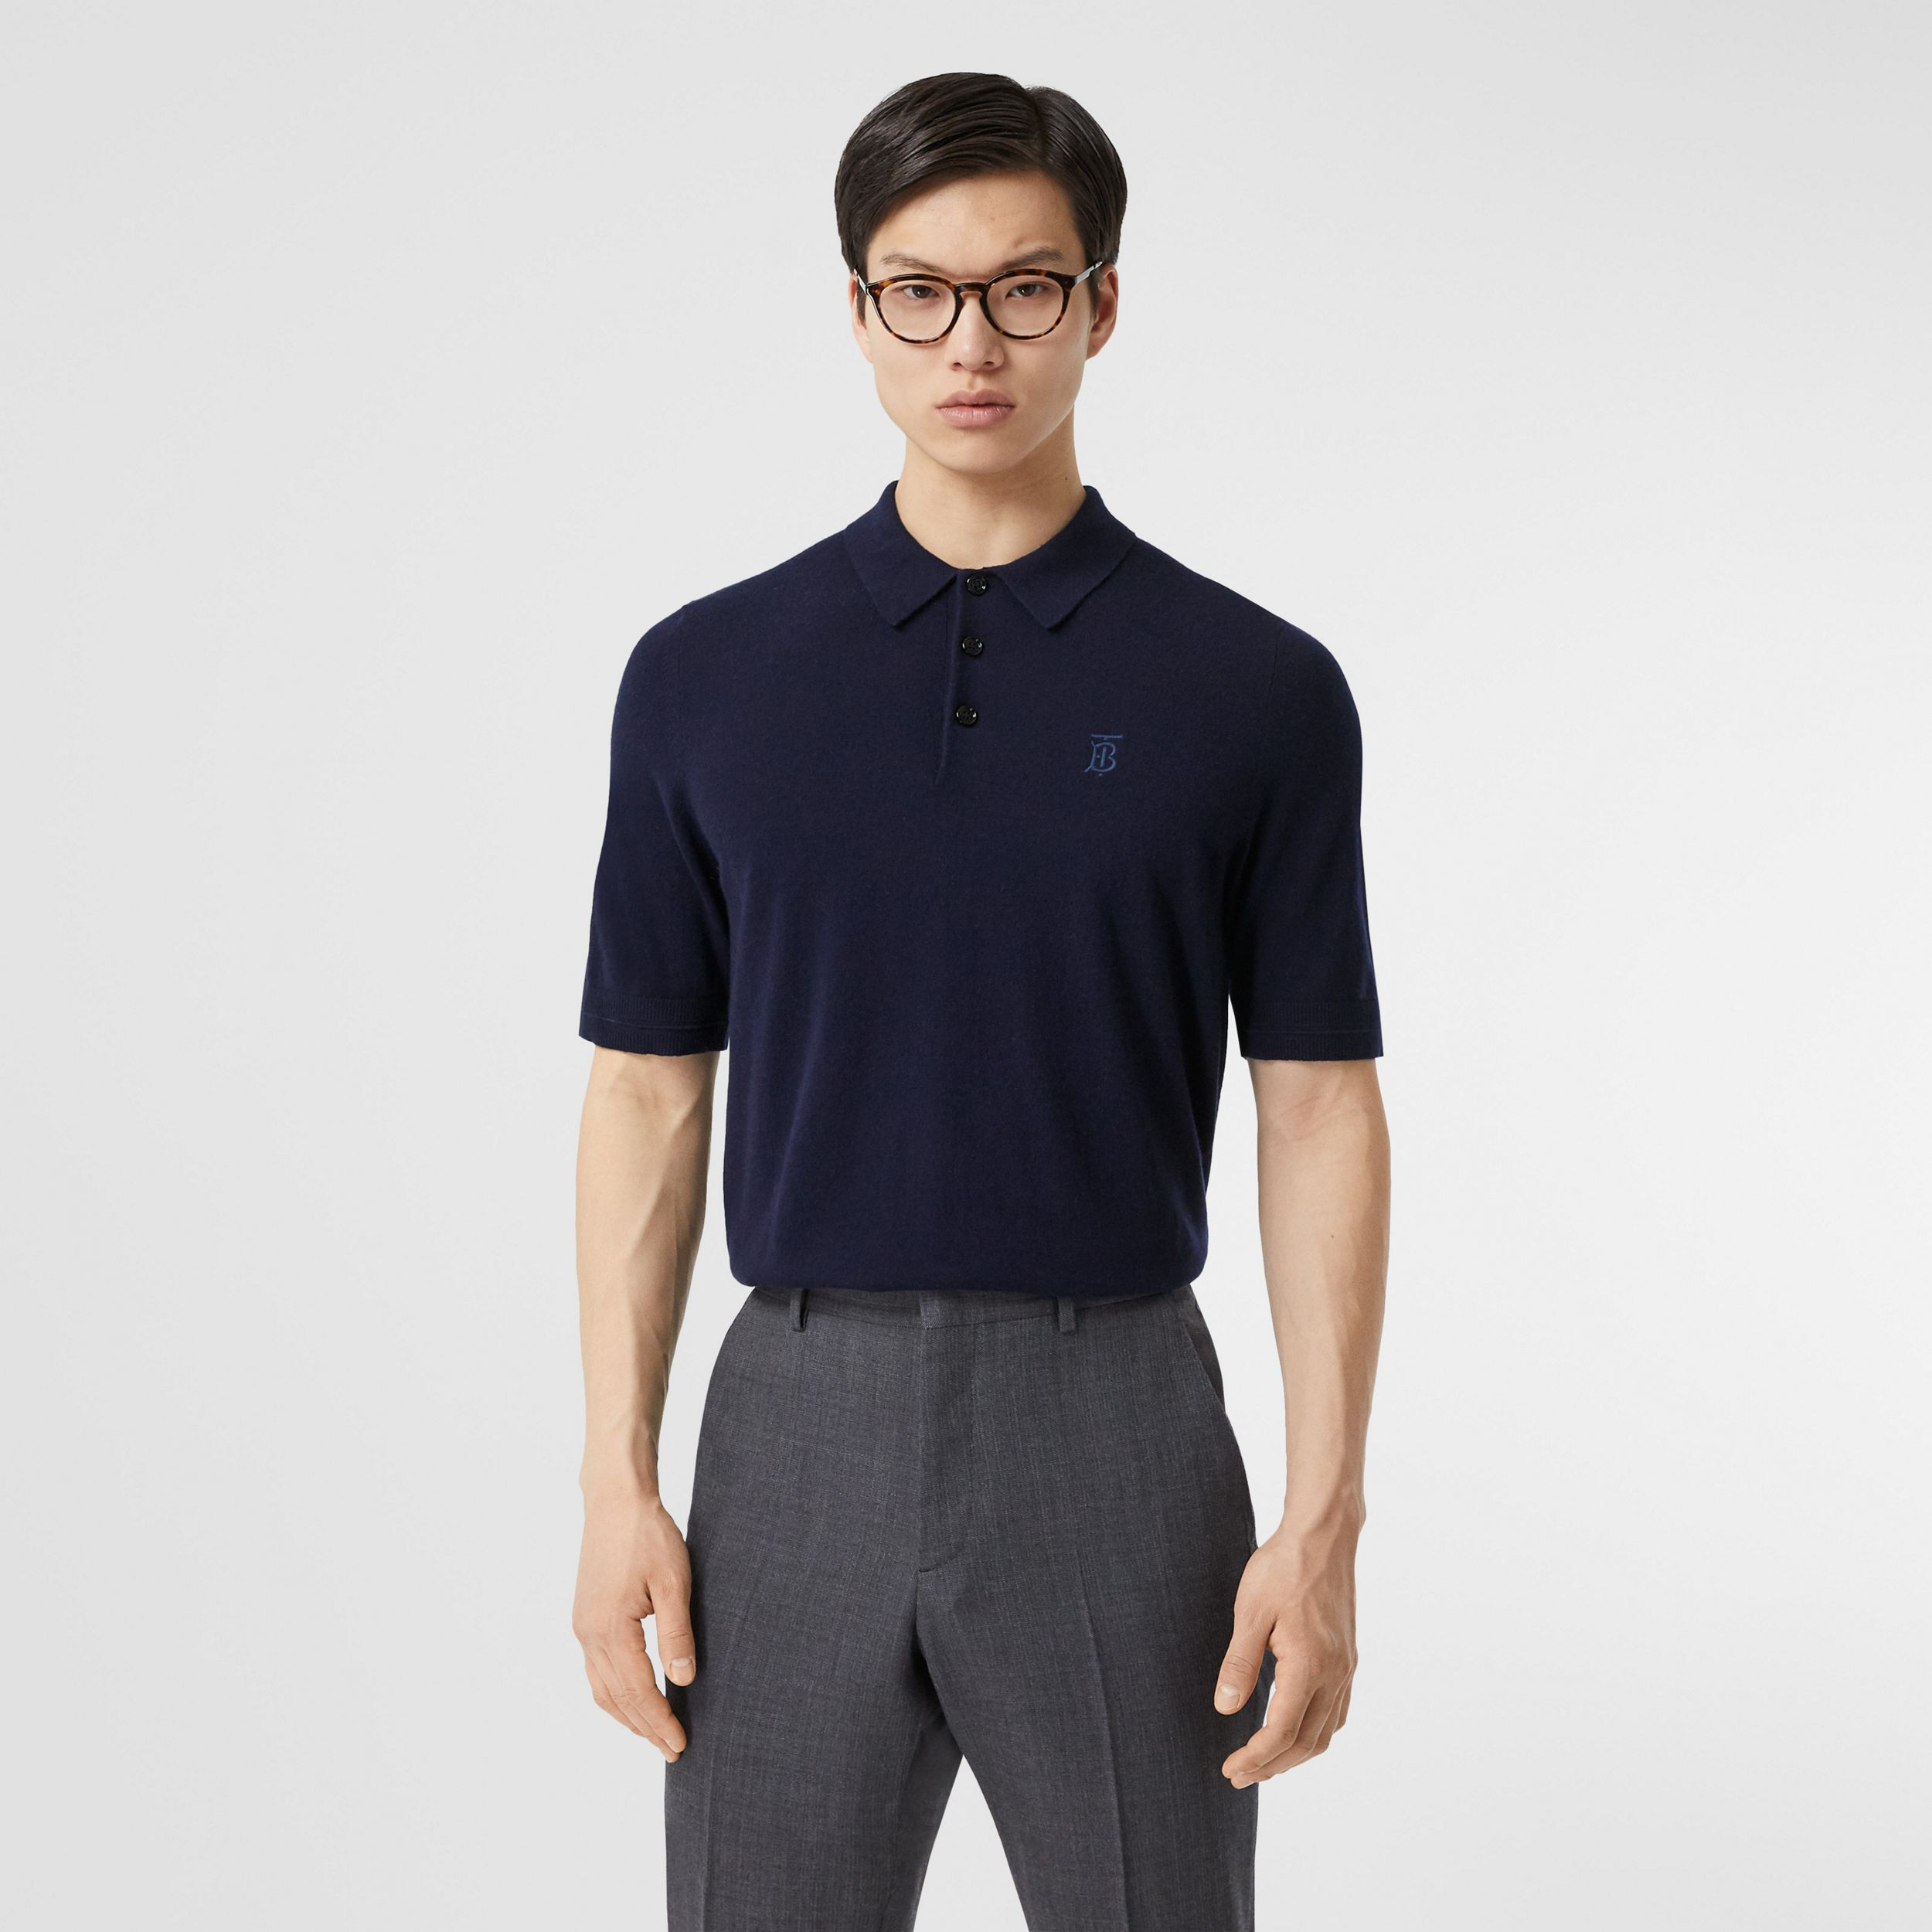 Monogram Motif Cashmere Polo Shirt in Navy - Men | Burberry Australia - 1